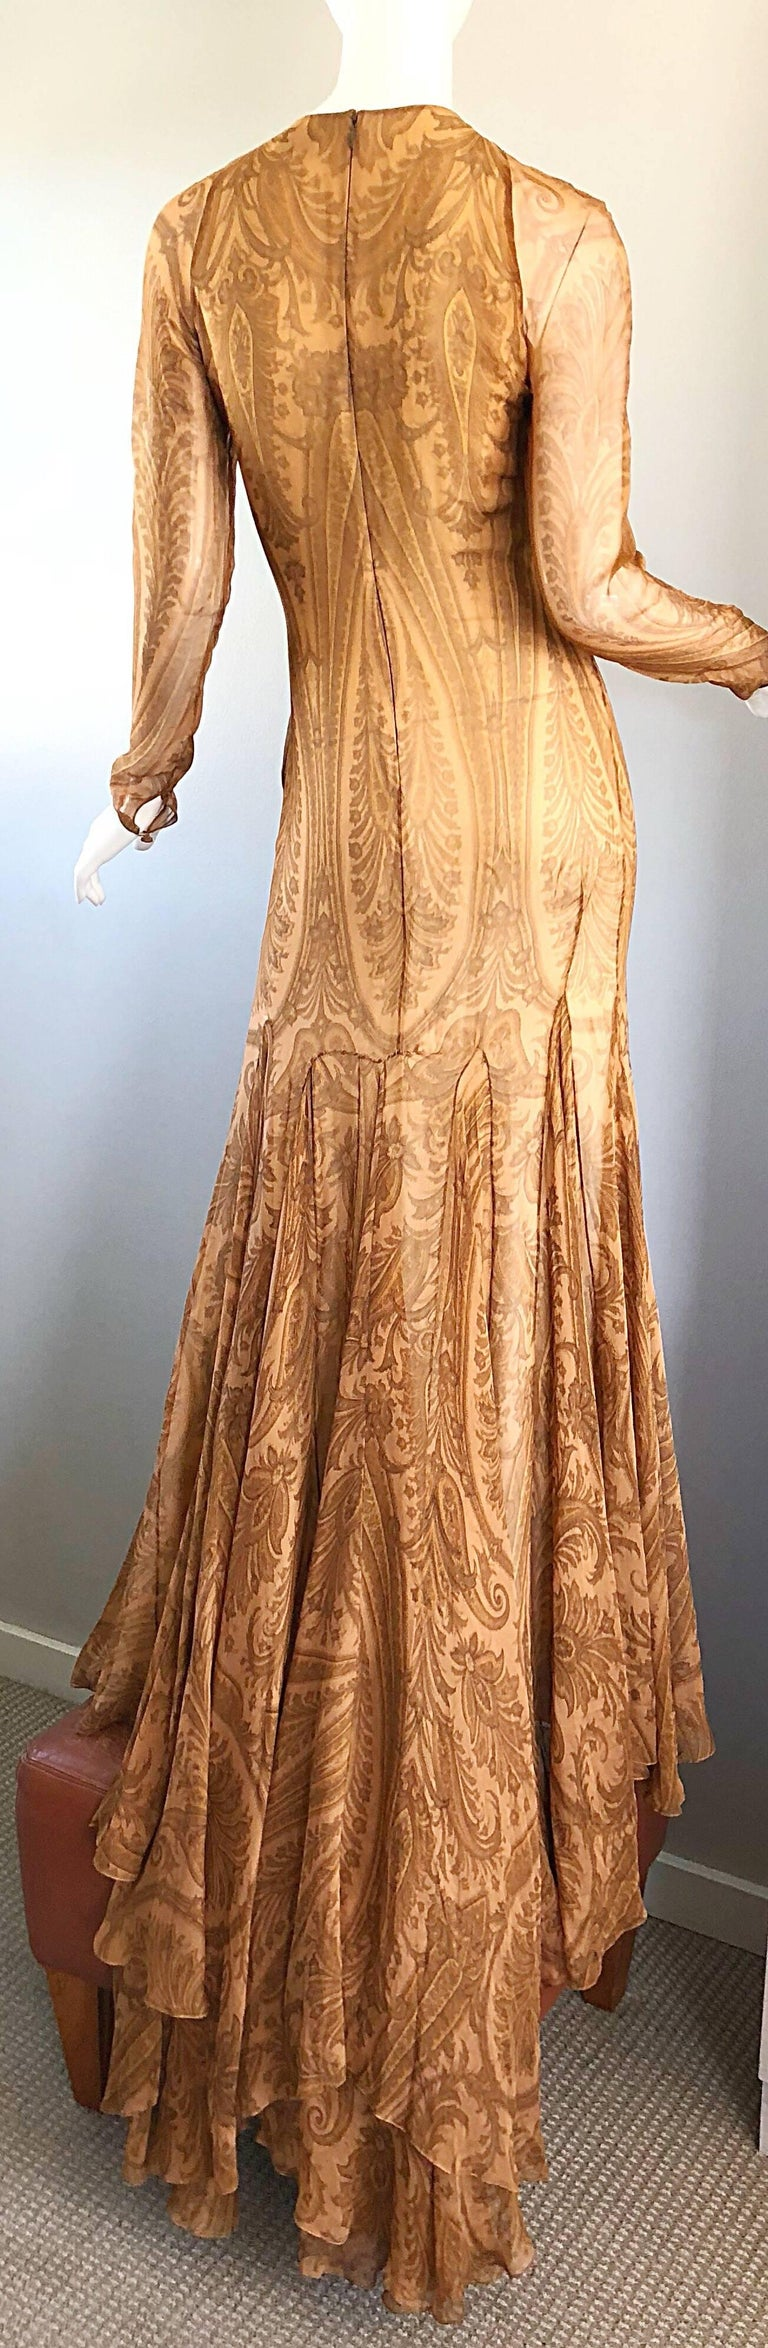 Sensational 1990s Bill Blass Couture Nude Silk Chiffon Paisley Vintage 90s Gown  For Sale 8